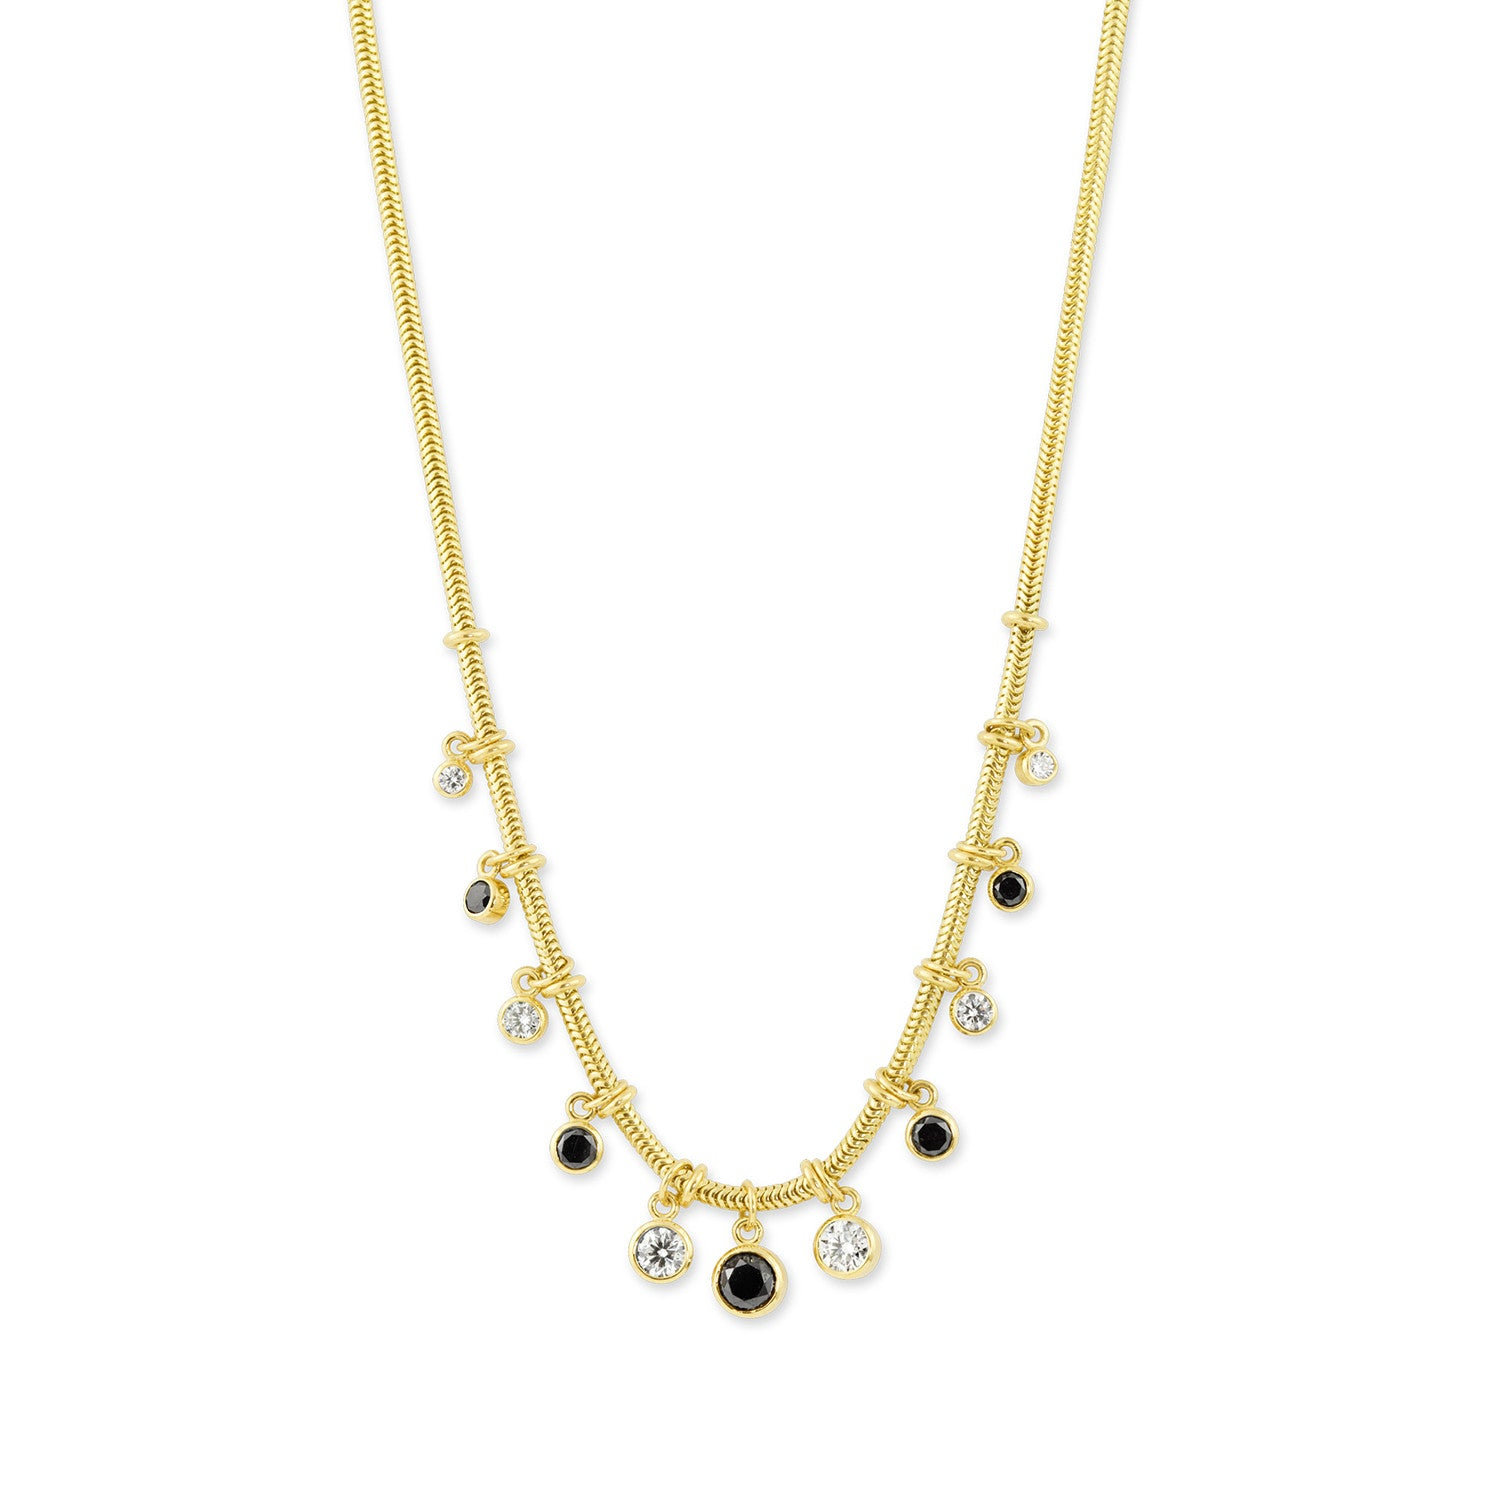 Gold Snake Chain Necklace with Black & White Diamonds,  - Katherine & Josephine